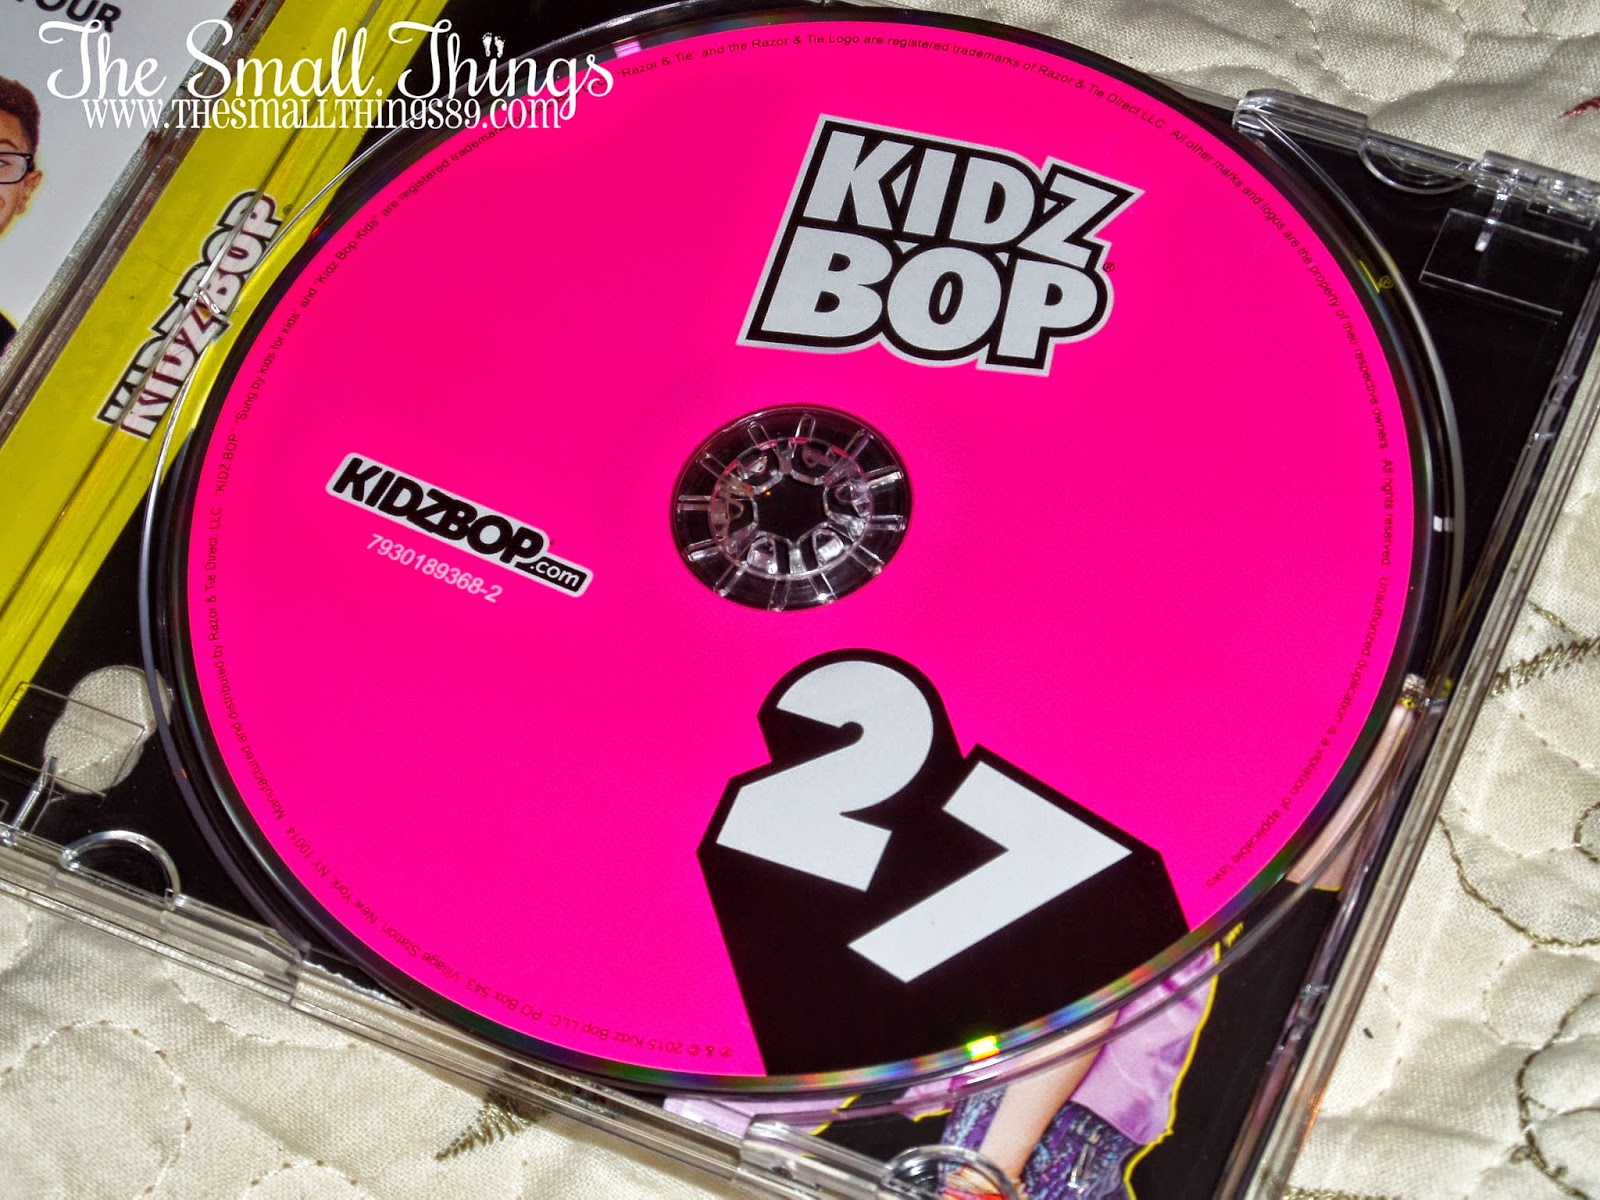 KIDZ BOP 27- Todays biggest hits sung by kids! ~ The Small Things